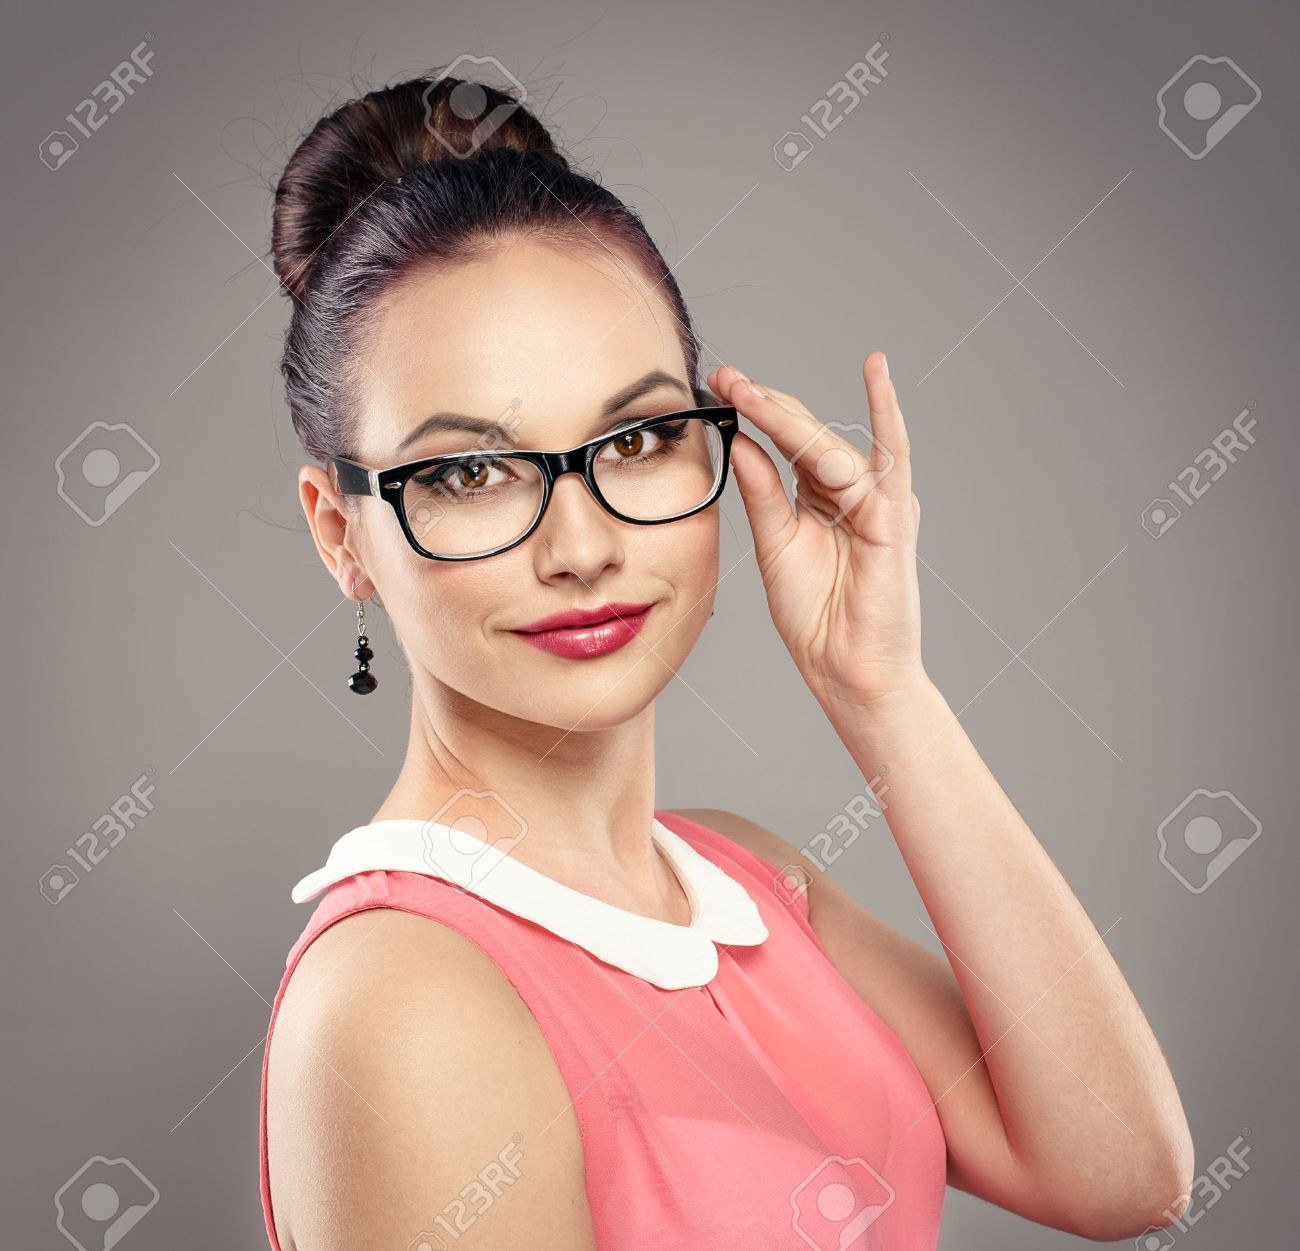 Close-up portrait of fashionable brunette woman with professional hairdo in eyeglasses. Young beautiful female model wearing spectacles posing in studio. - 39873261